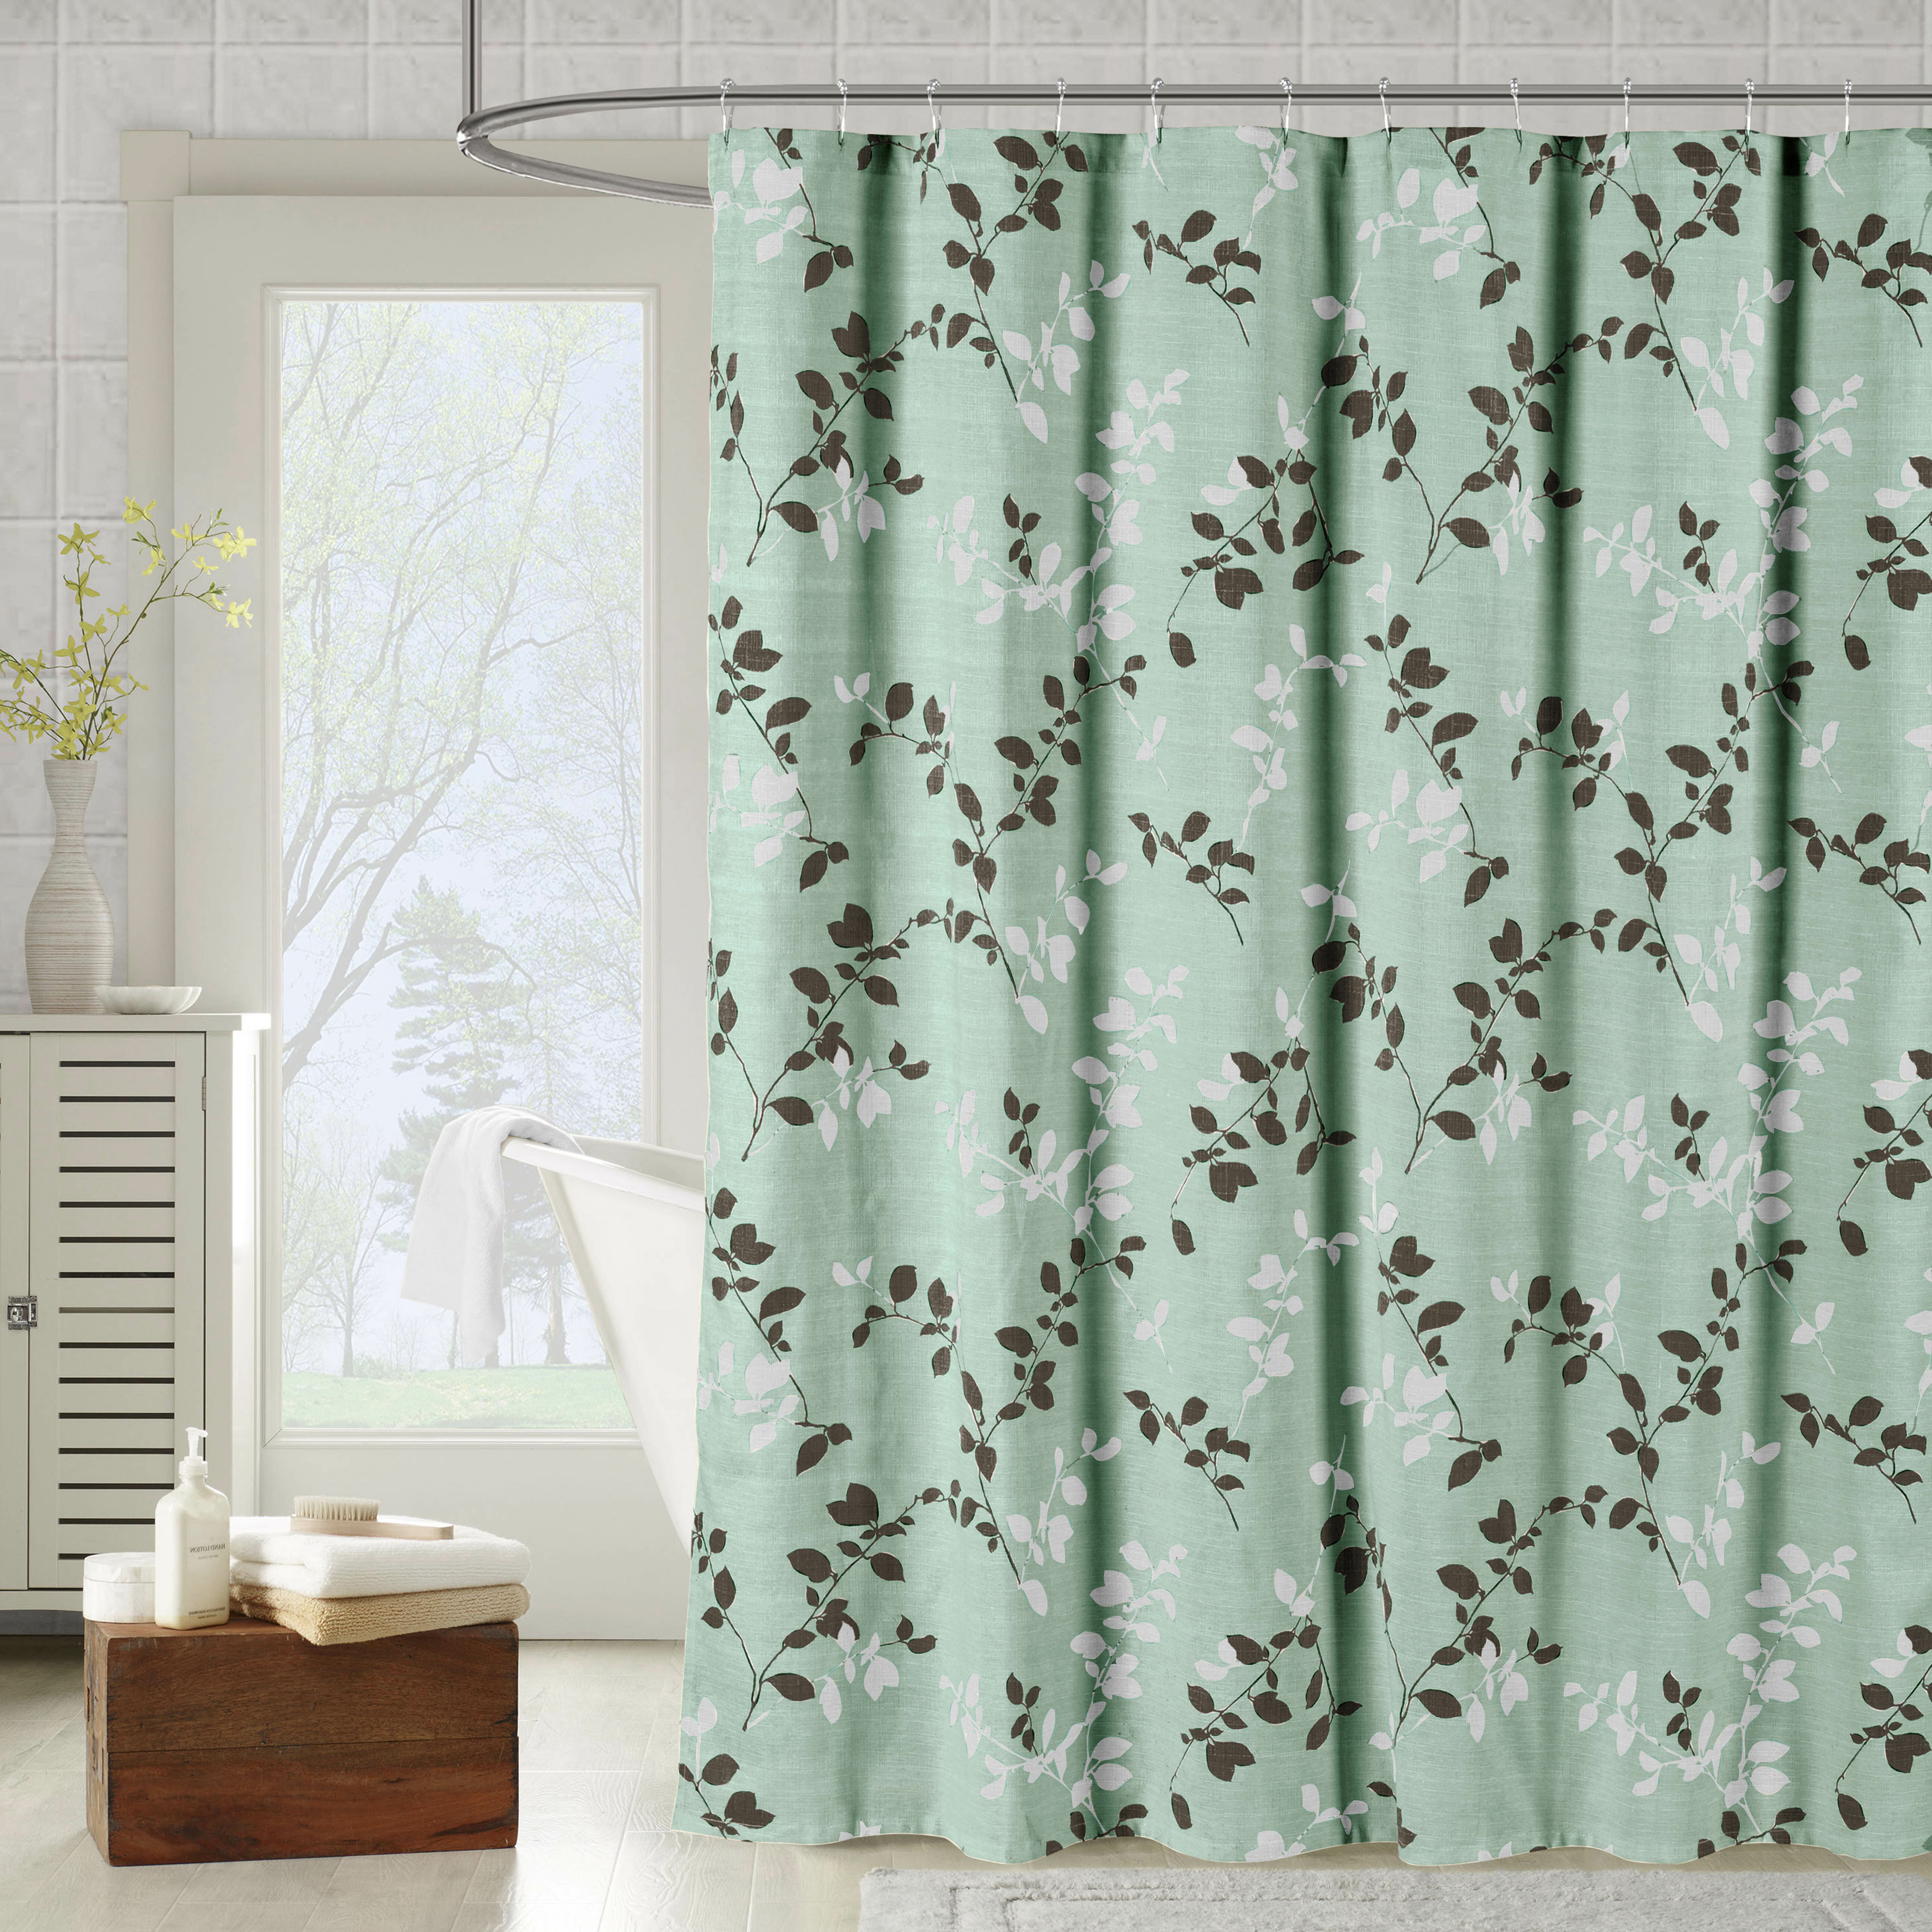 Meridian Printed Cotton Blend Single Shower Curtain